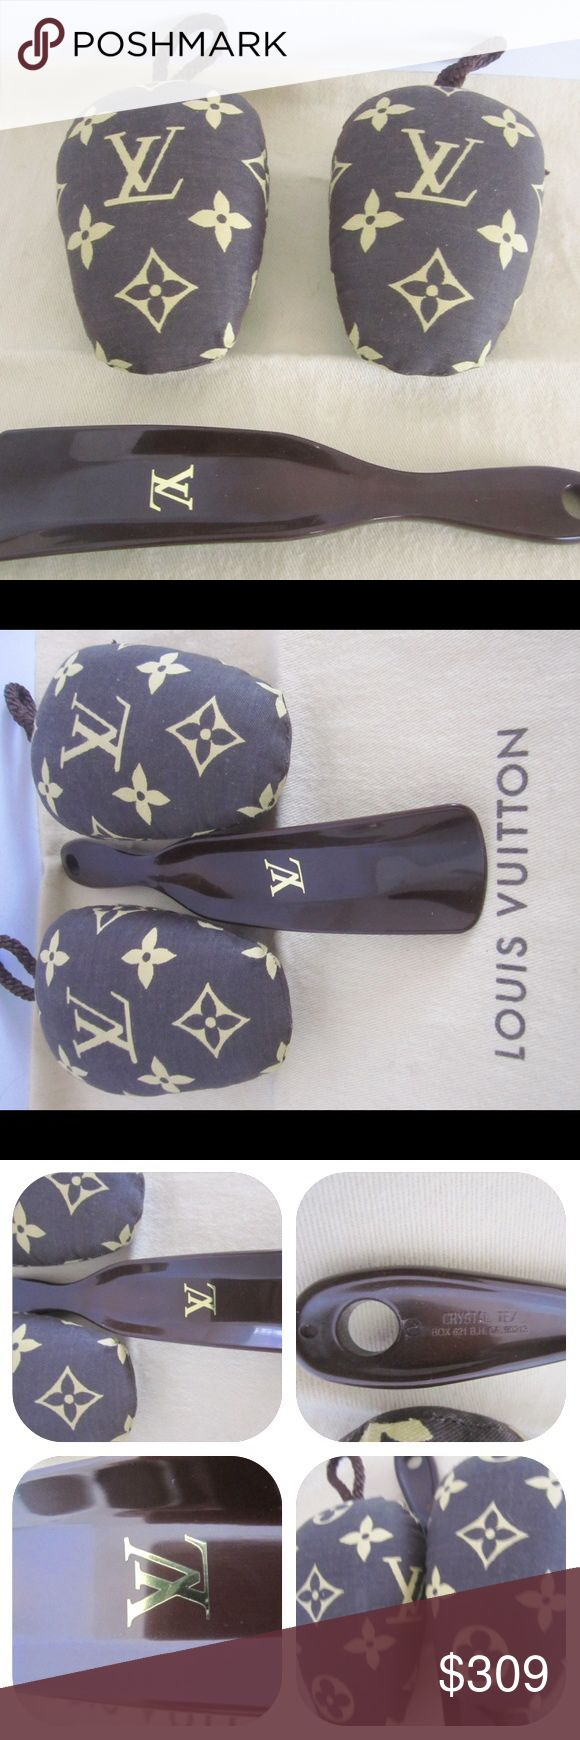 """Auth. Louis Vuitton Shoe Inserts and Shoe Horn 100% auth. Preowned. Excellent condition. Please view all photos carefully, as they are an essential part of the description. Dimensions: 4"""" length, 2.75"""" width, 1"""" depth. For ladies shoes. Louis Vuitton monogram fabric inserts. With Louis Vuitton VIP shoehorn( never sold in stores) Very rare and collectible vintage item! Keep your shoes looking great, or just add these to your collection. Makes a great gift for the Louis Vuitton collector…"""